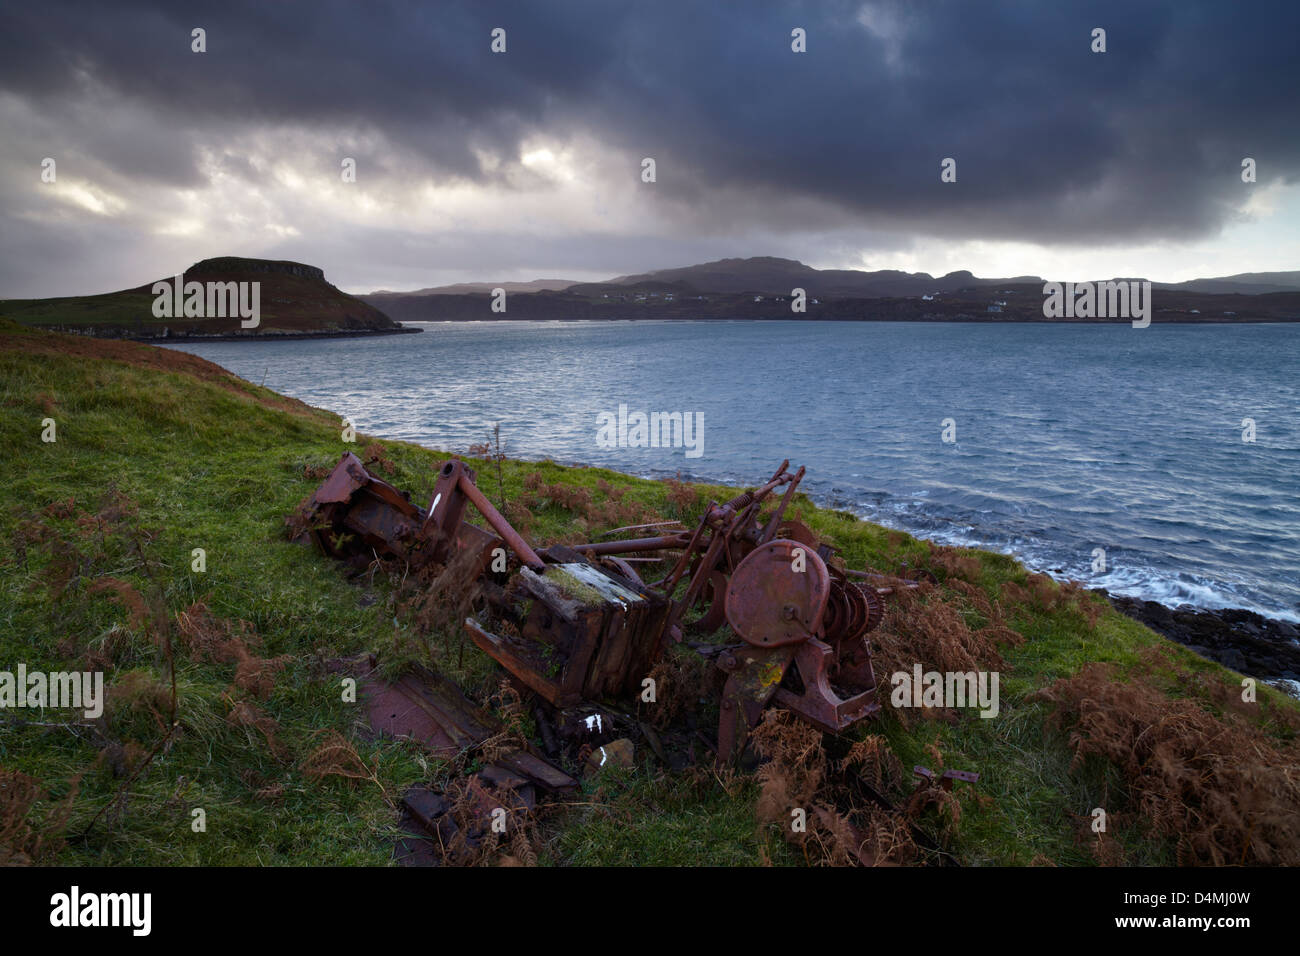 Storm clouds over Gesto Bay and the entrance to Loch Harport, Isle of Skye, Scotland Stock Photo